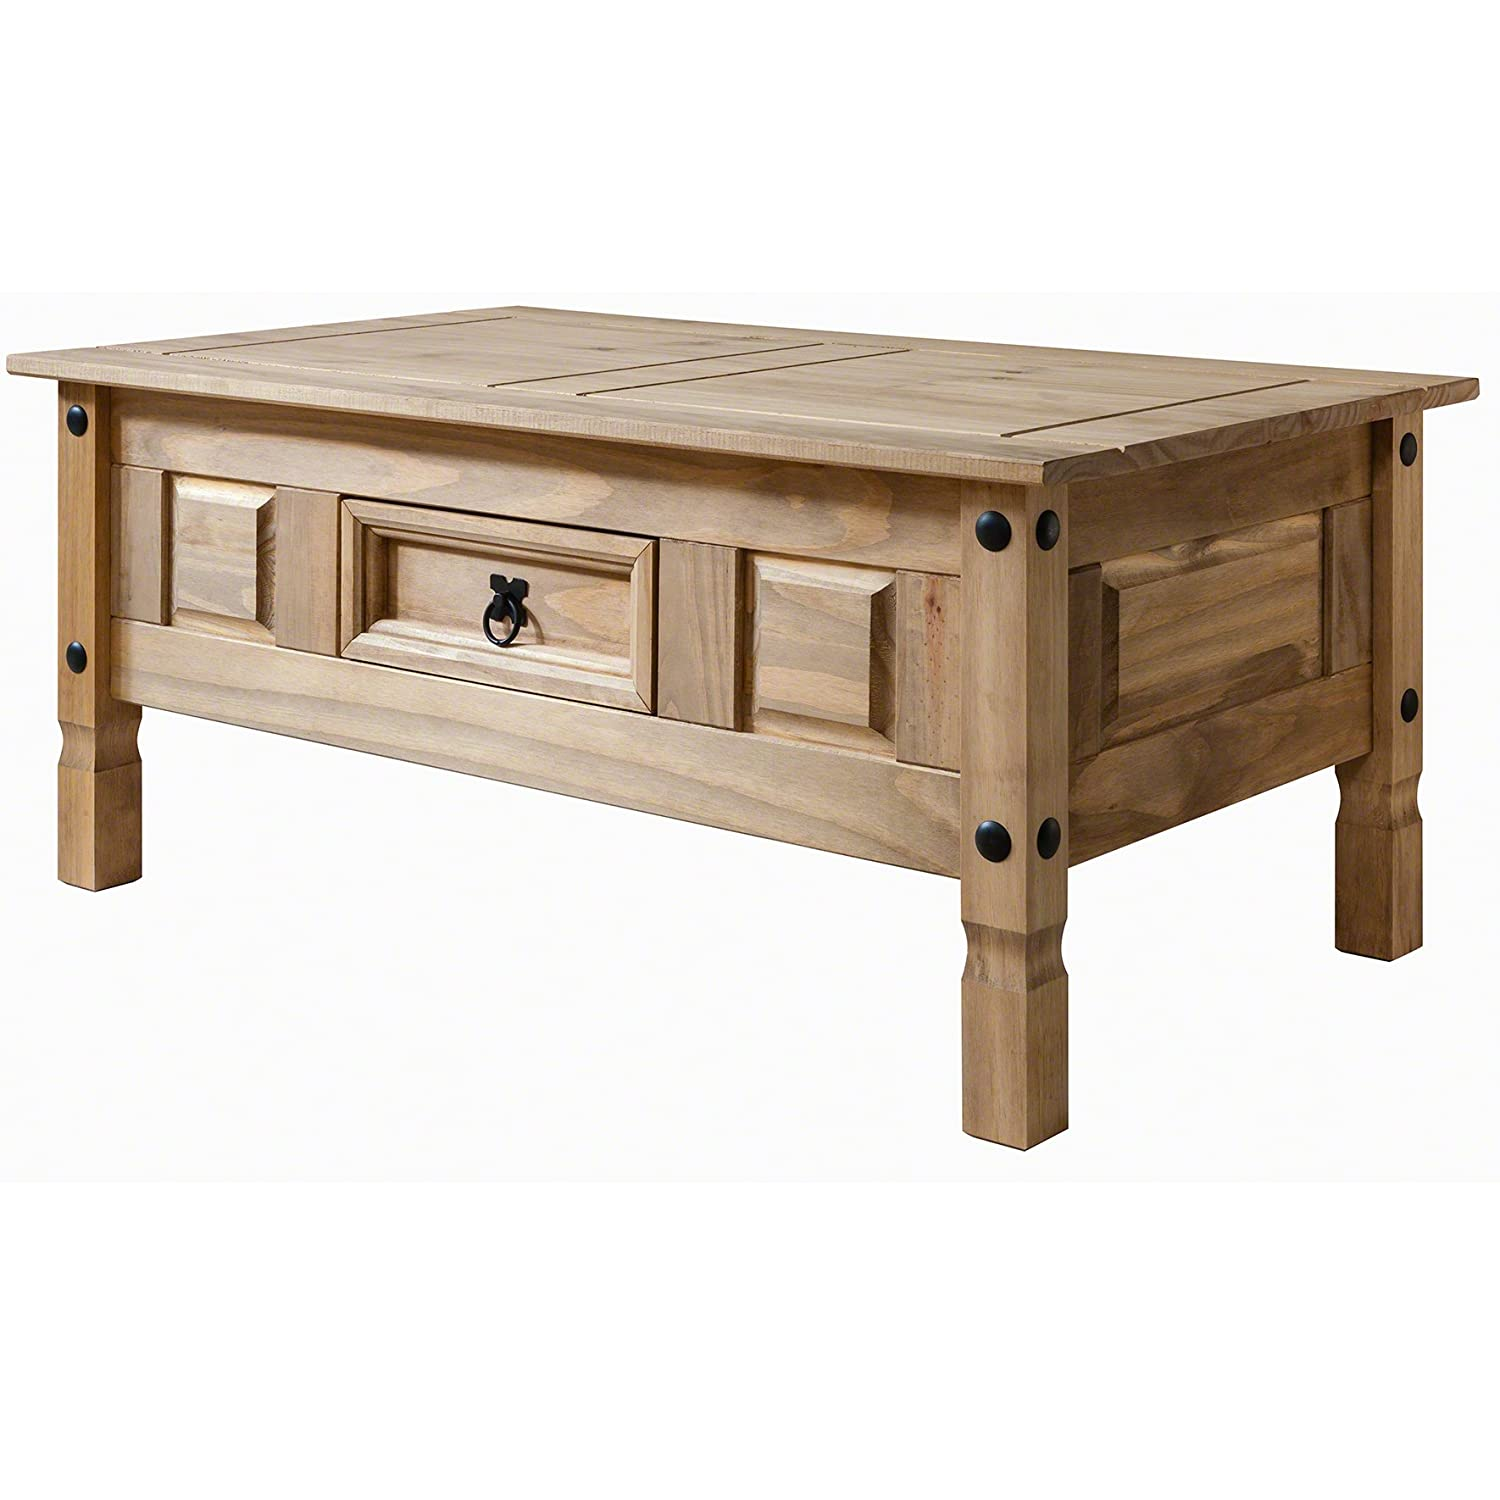 Two block storage coffee table stone two block storage coffee table - Corona Mexican Pine Coffee Table Rustic Design With Drawer